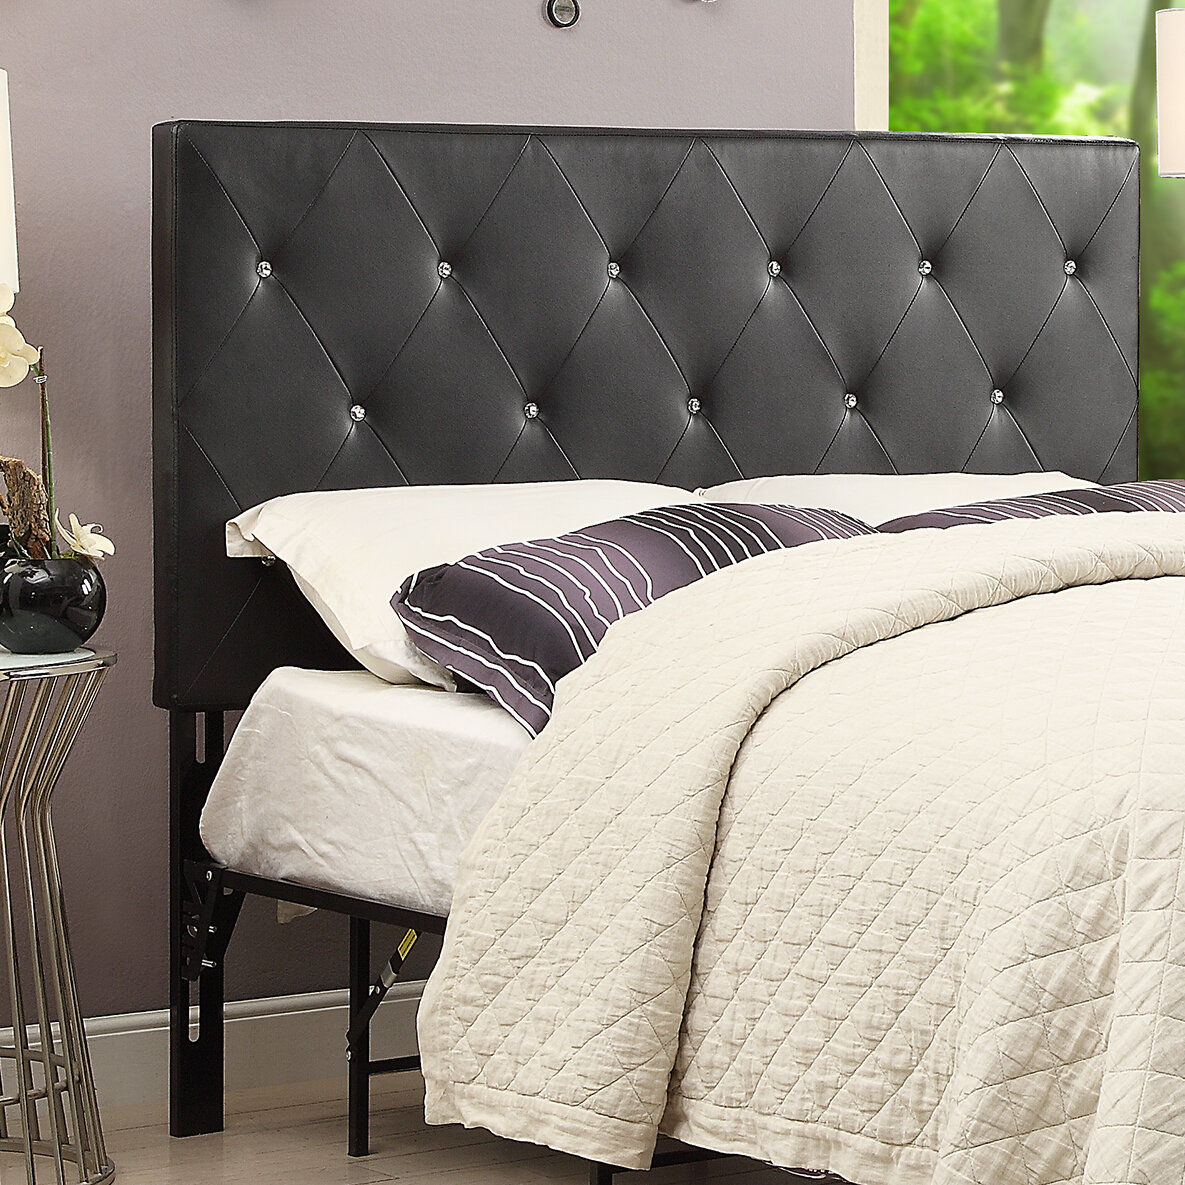 tufted upholstered beds. mercer41 areswell crystal diamond tufted upholstered headboard \u0026 reviews |  wayfair tufted upholstered beds t